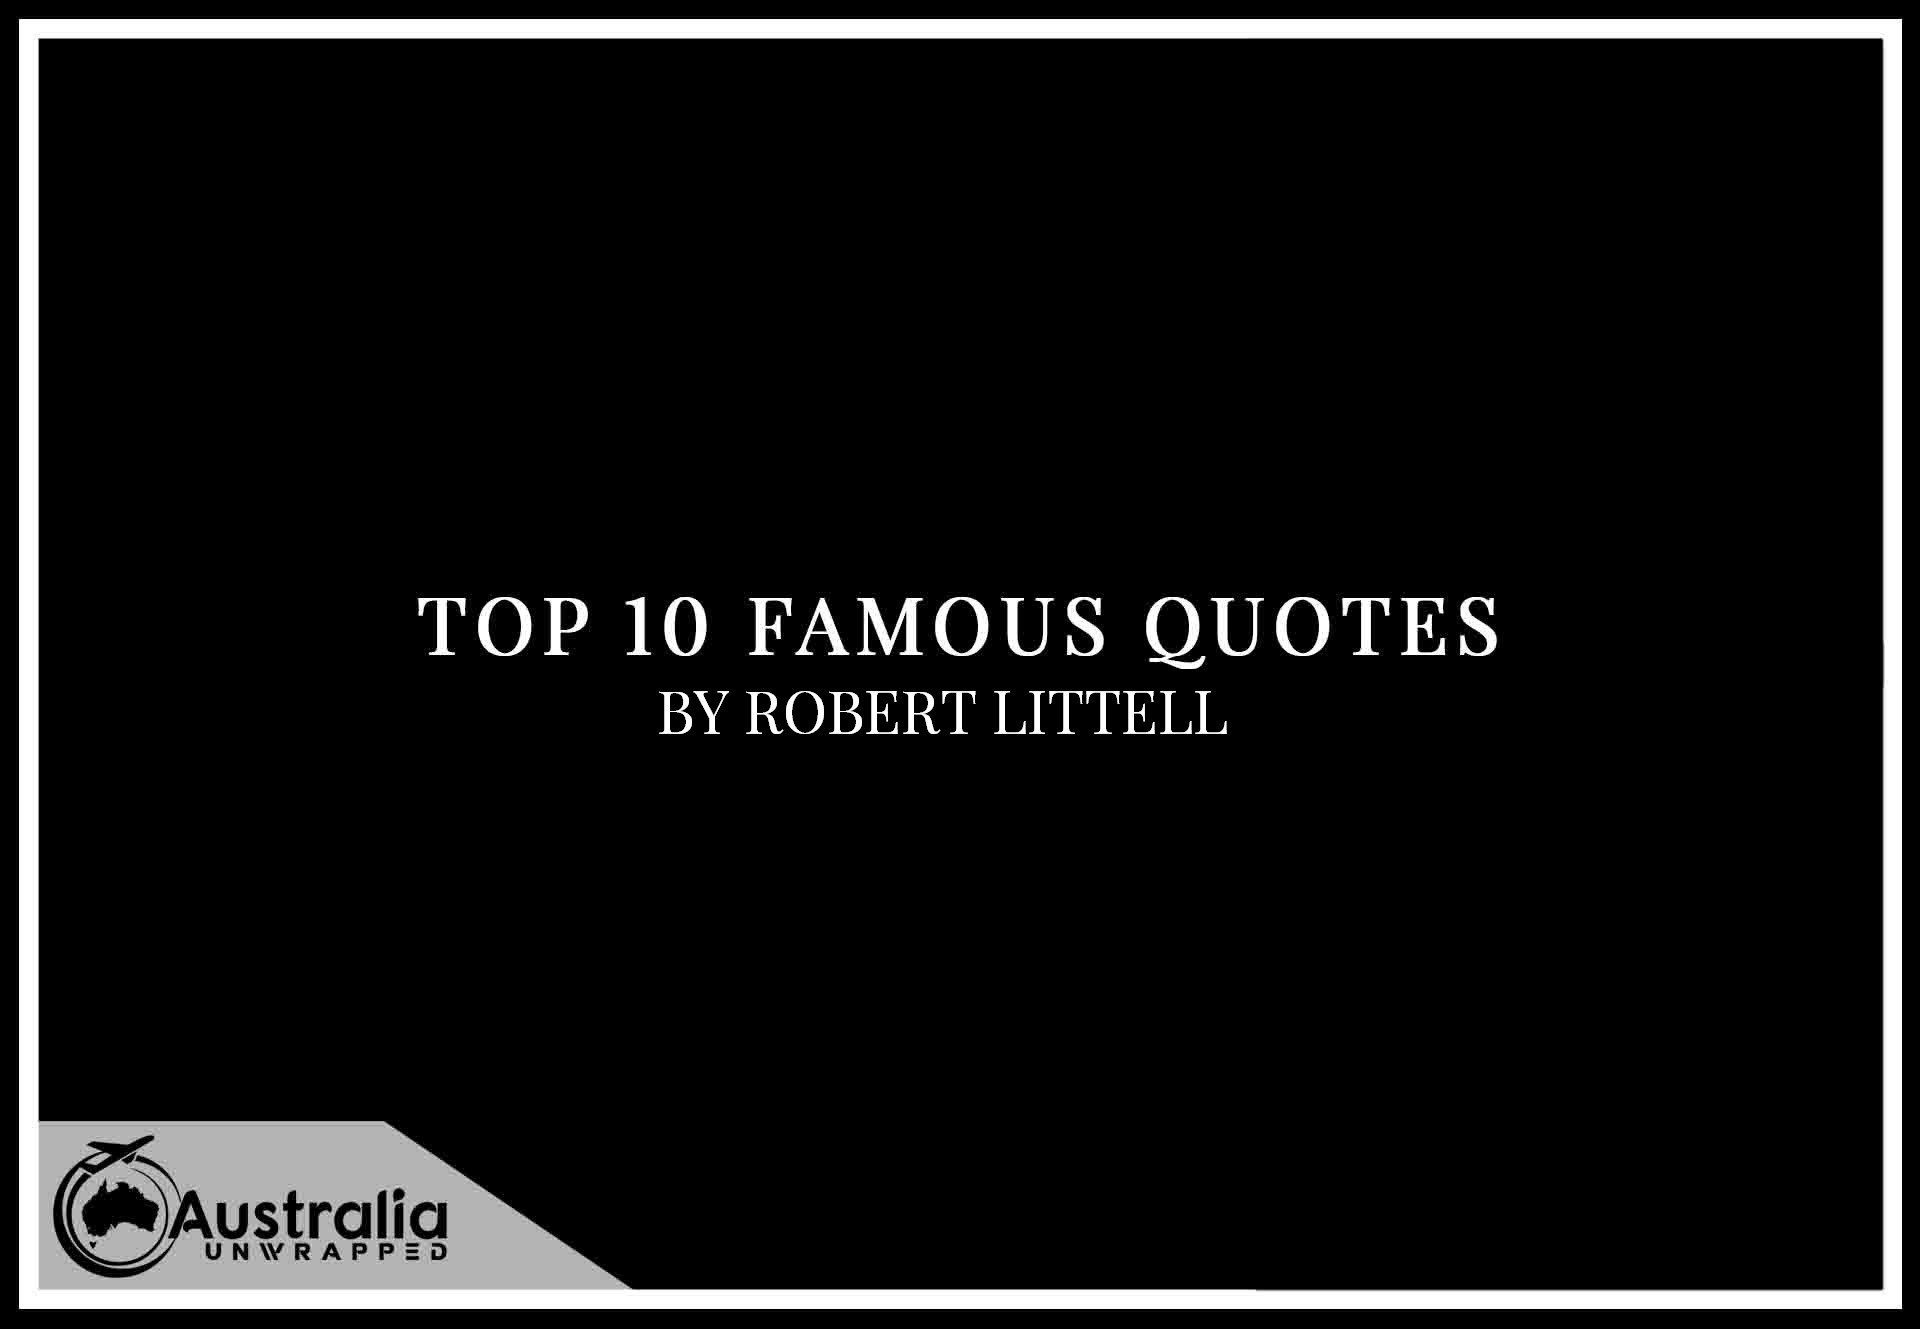 Top 10 Famous Quotes by Author Robert Littell